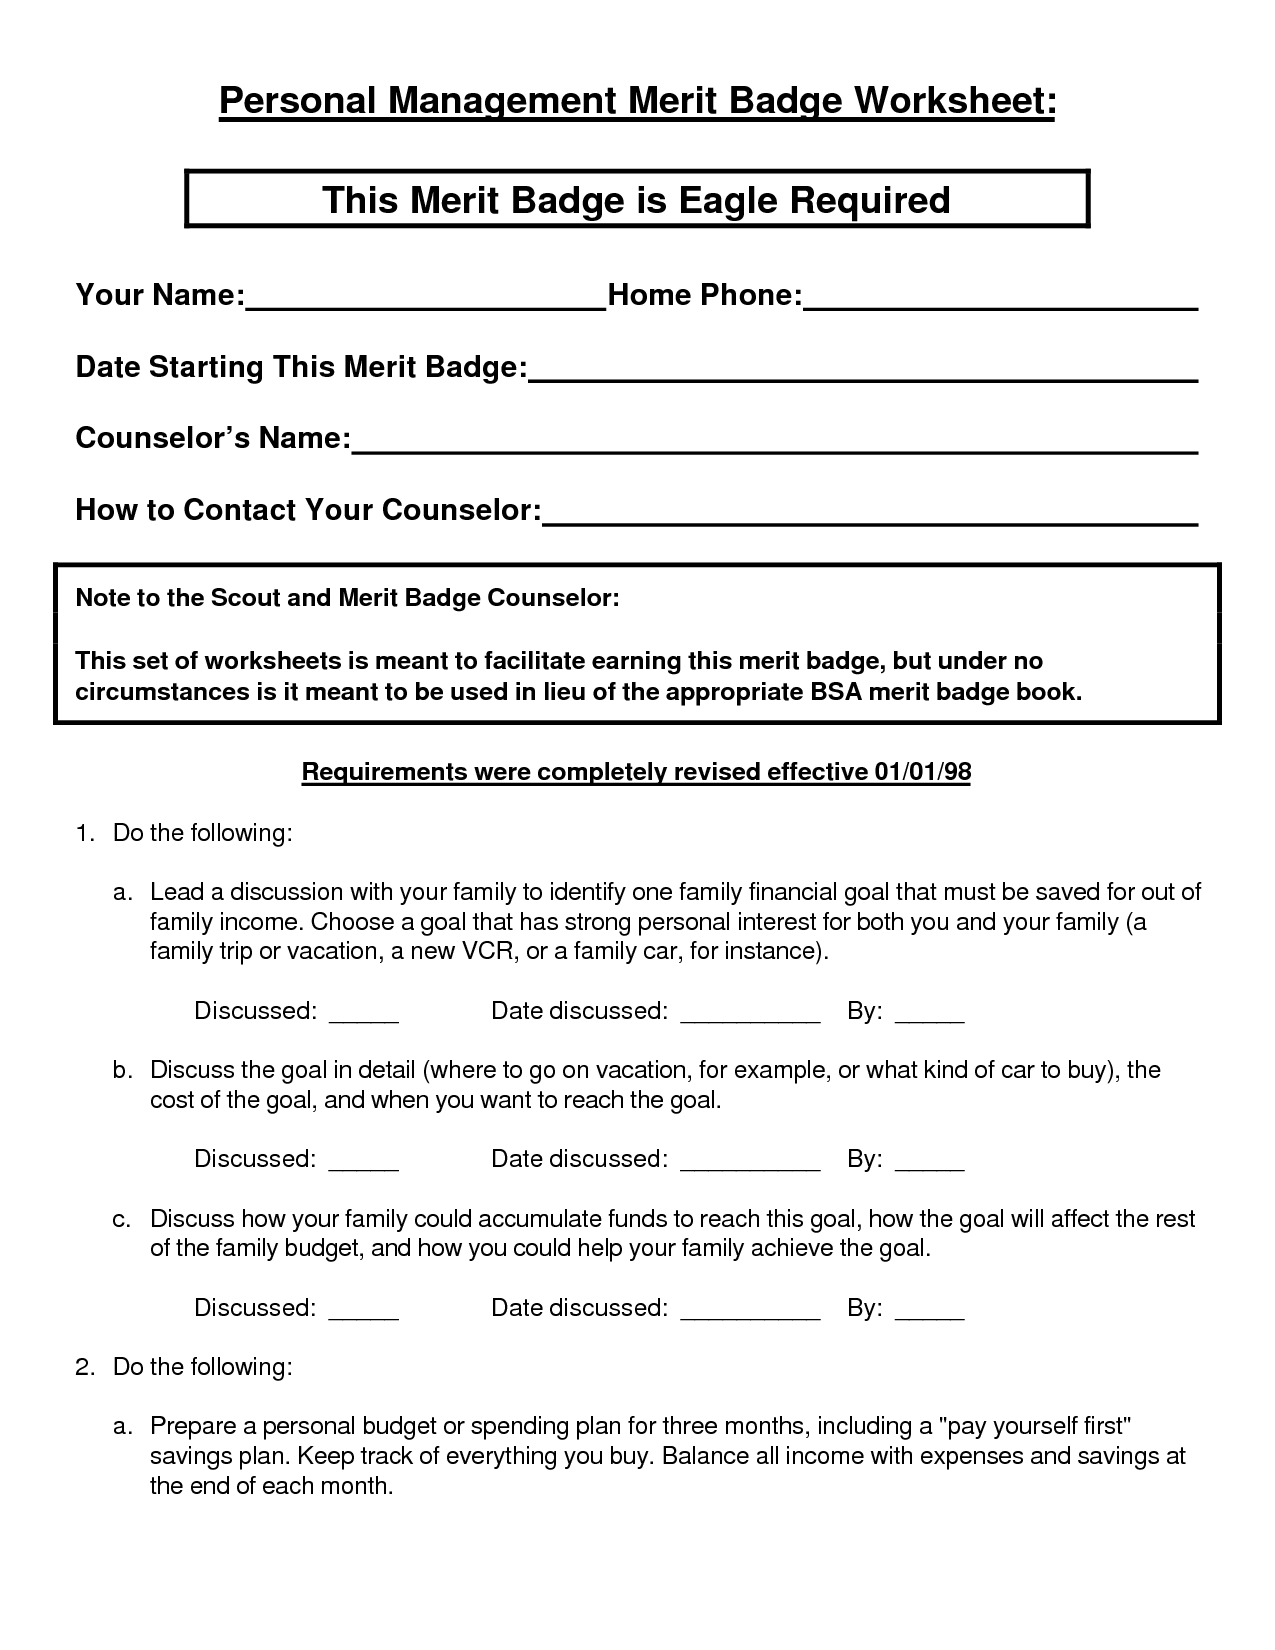 Personal Fitness Worksheet Free Worksheets Library